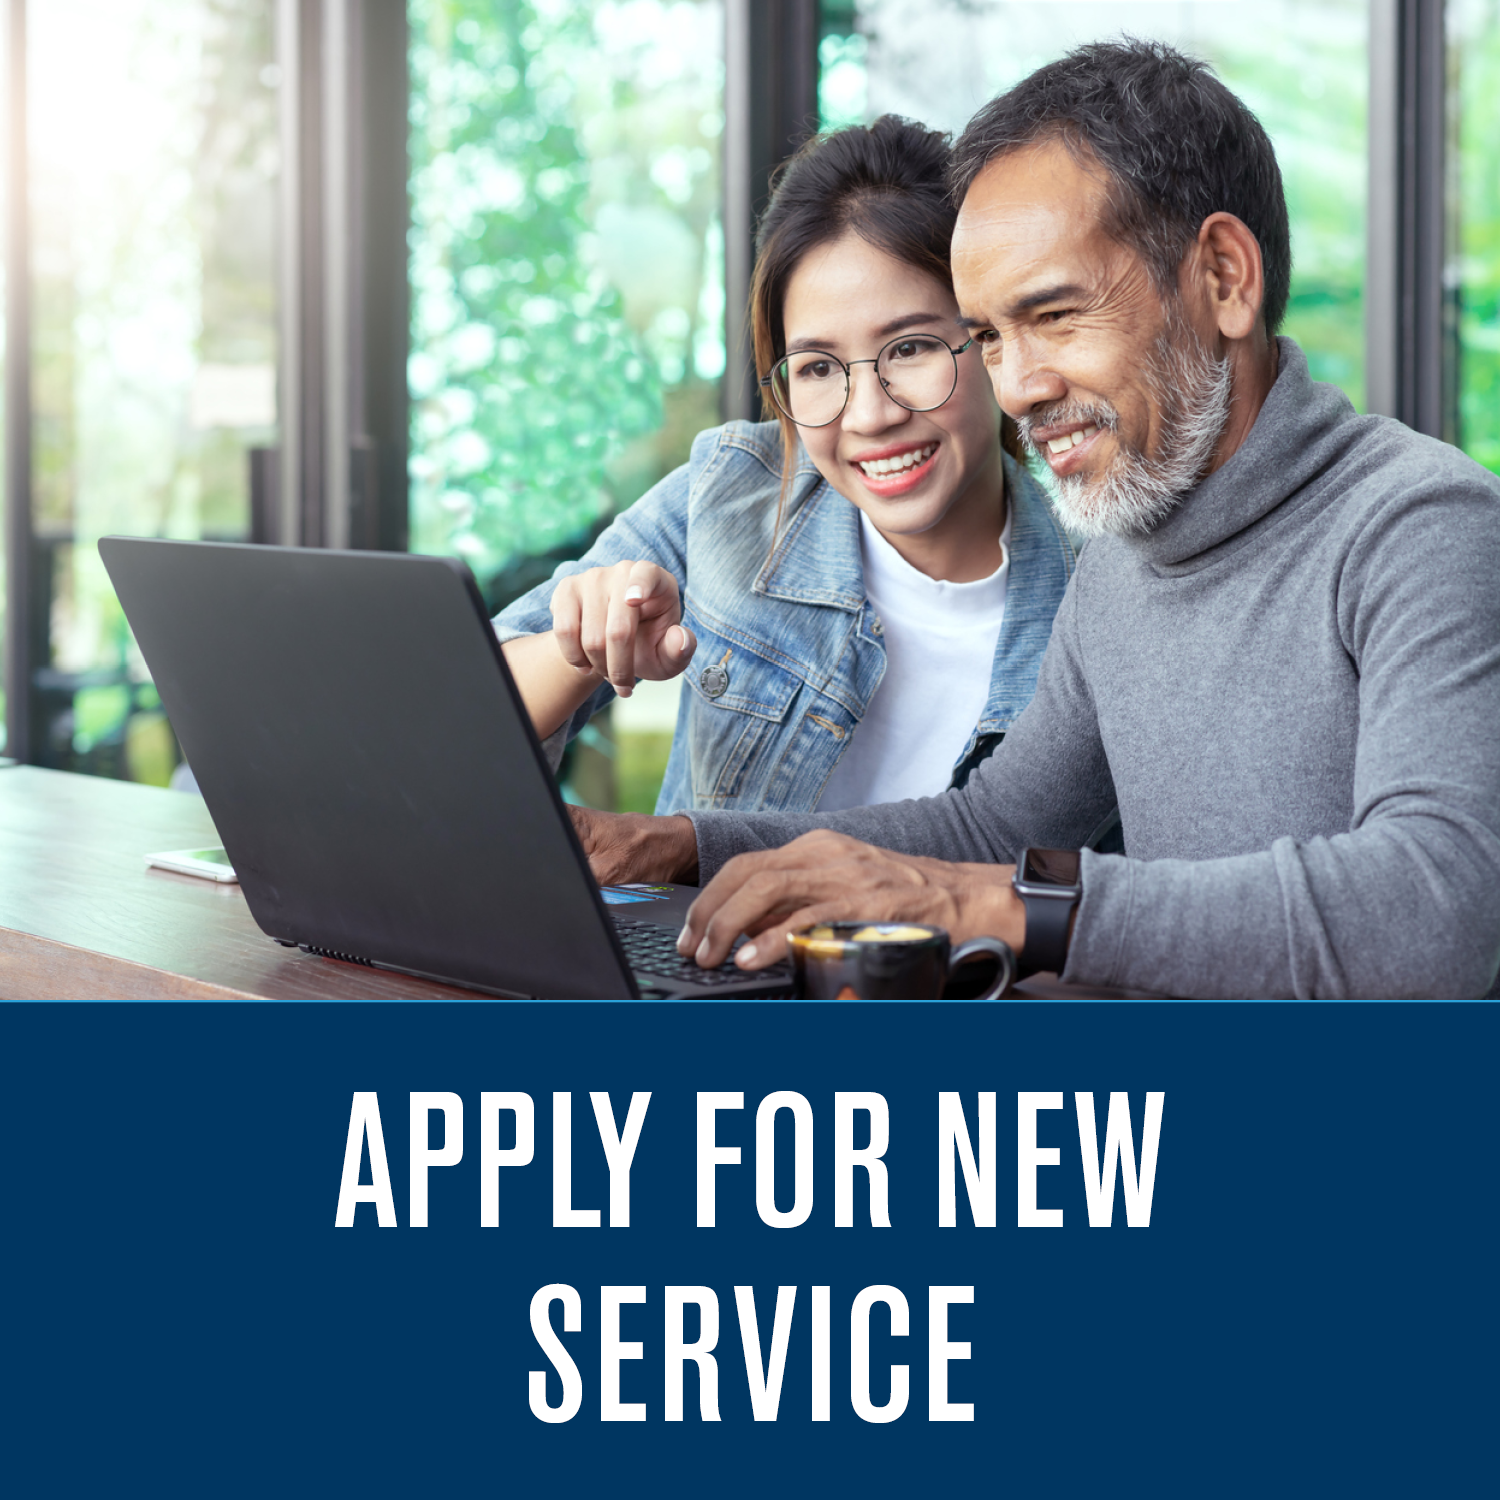 Apply For New Service